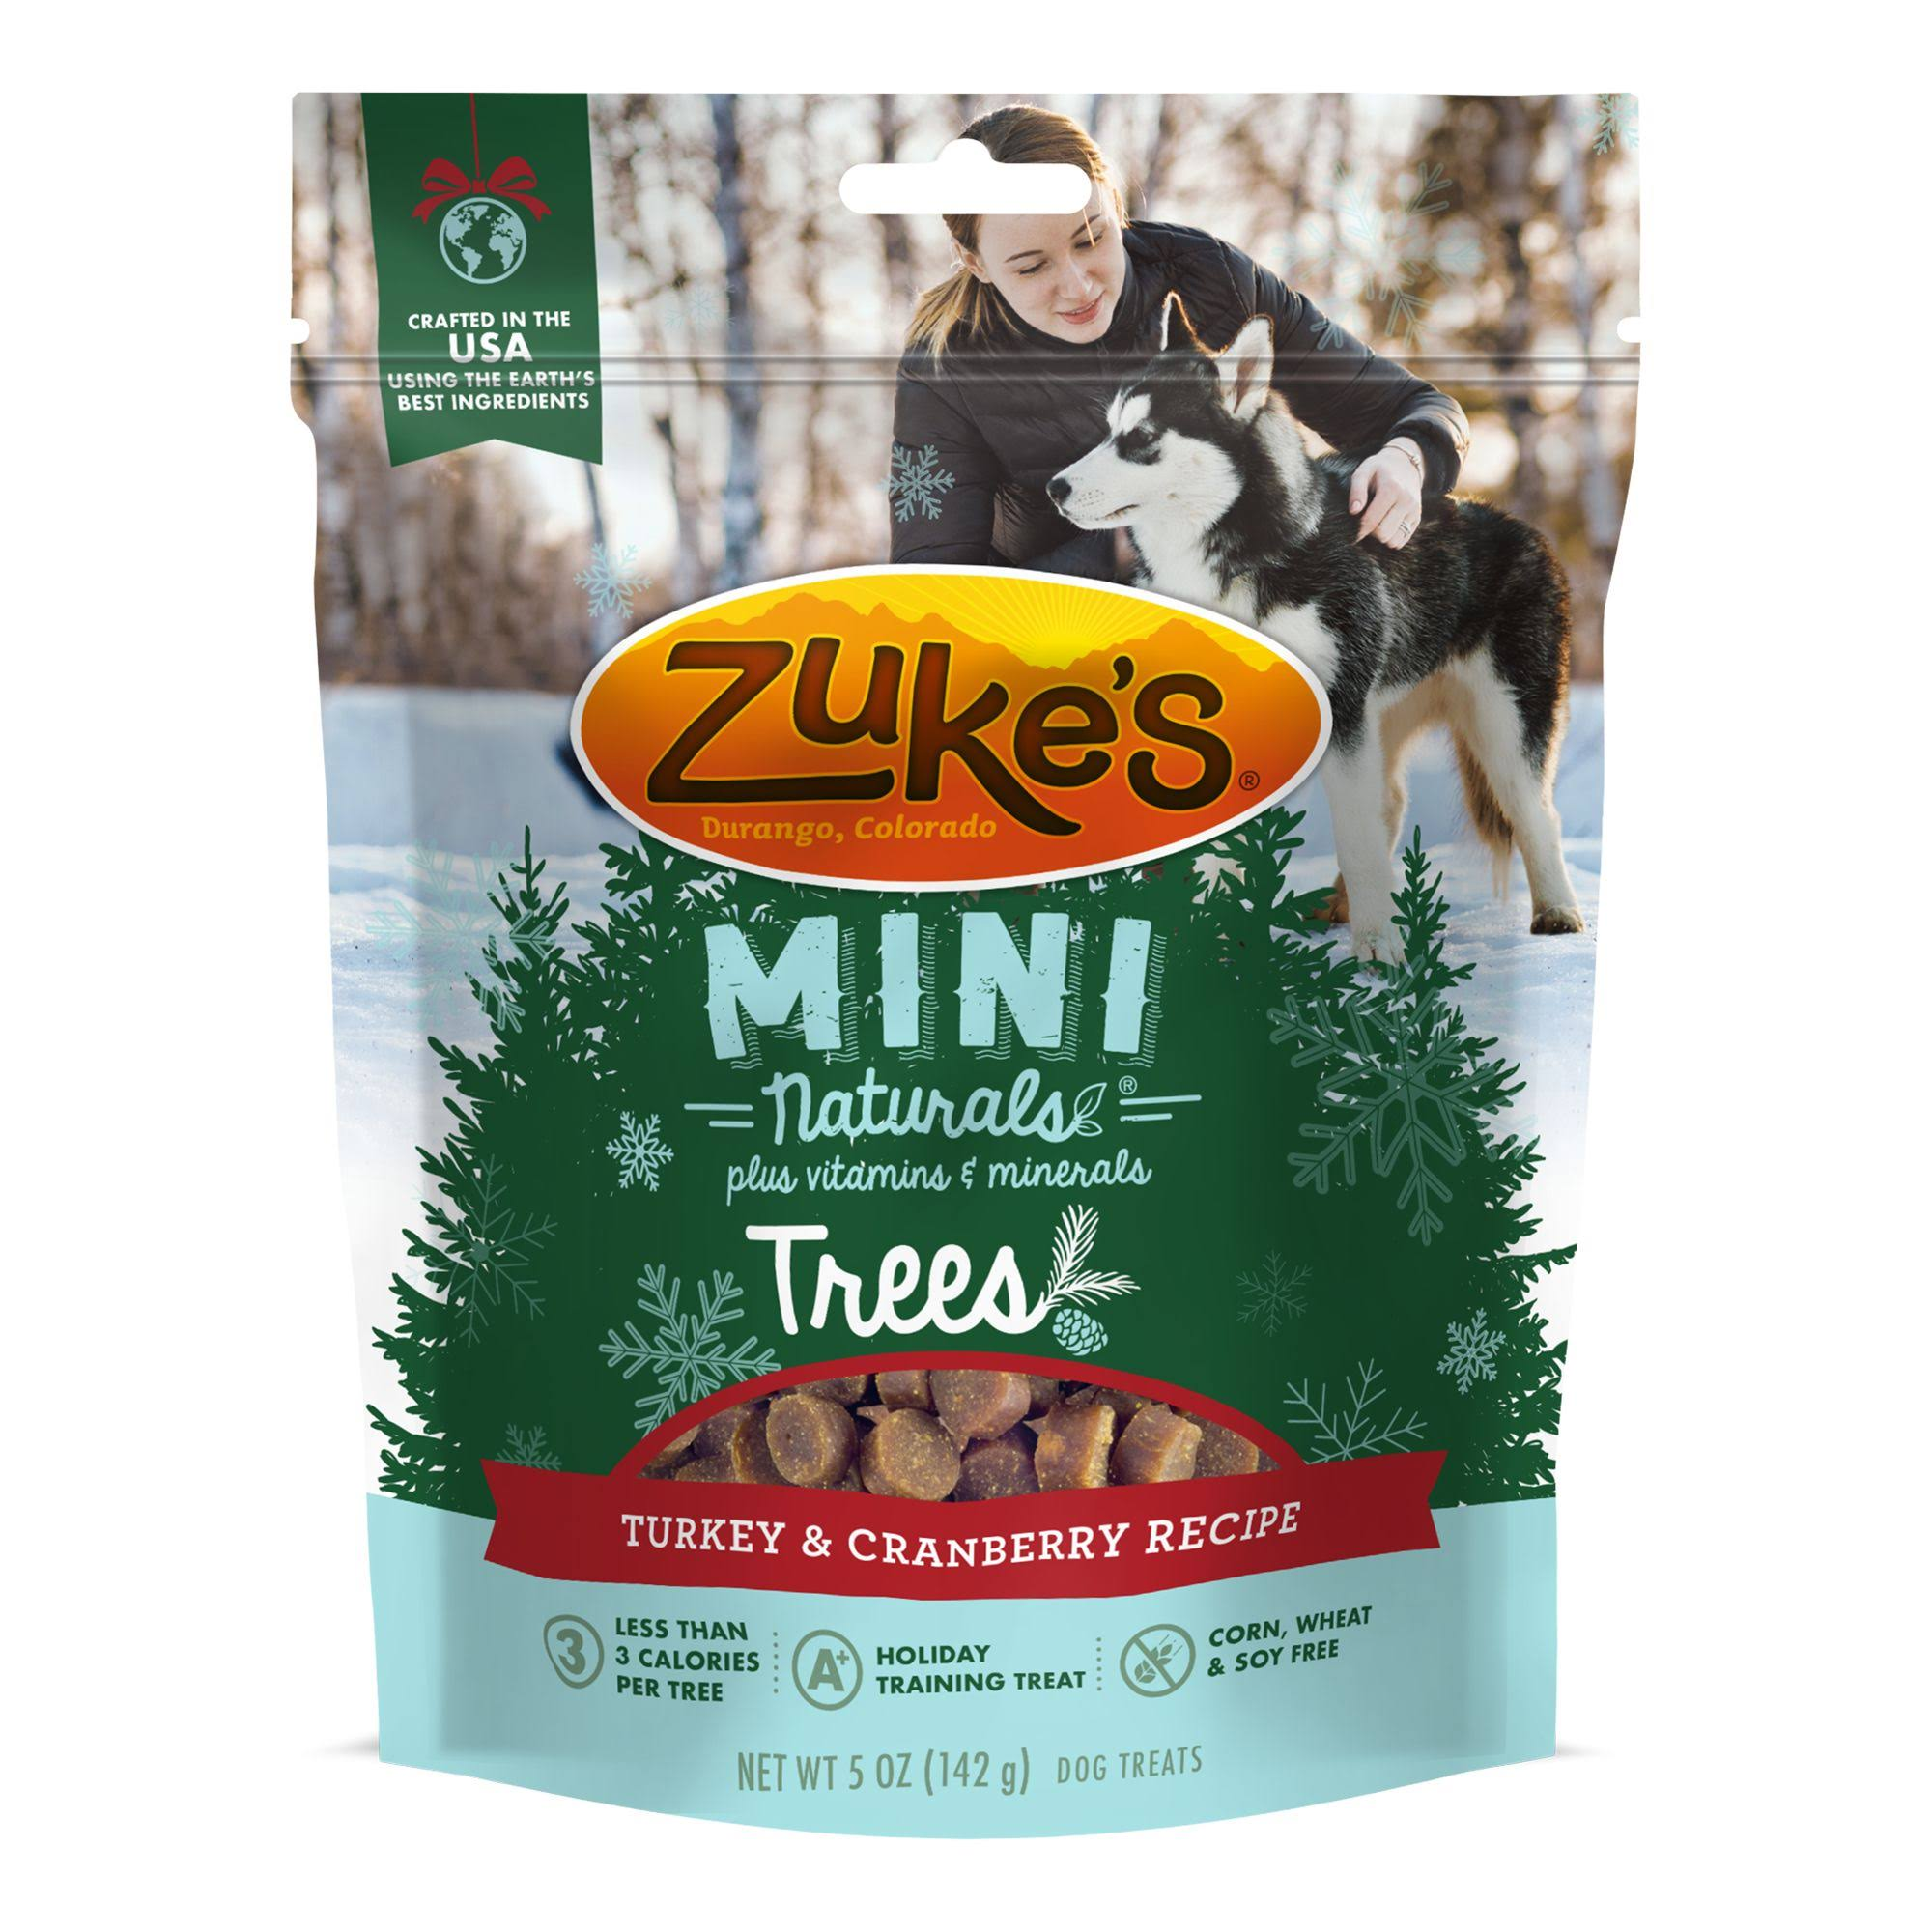 Zuke's Mini Naturals Turkey & Cranberry Recipe Dog Treats 5 oz